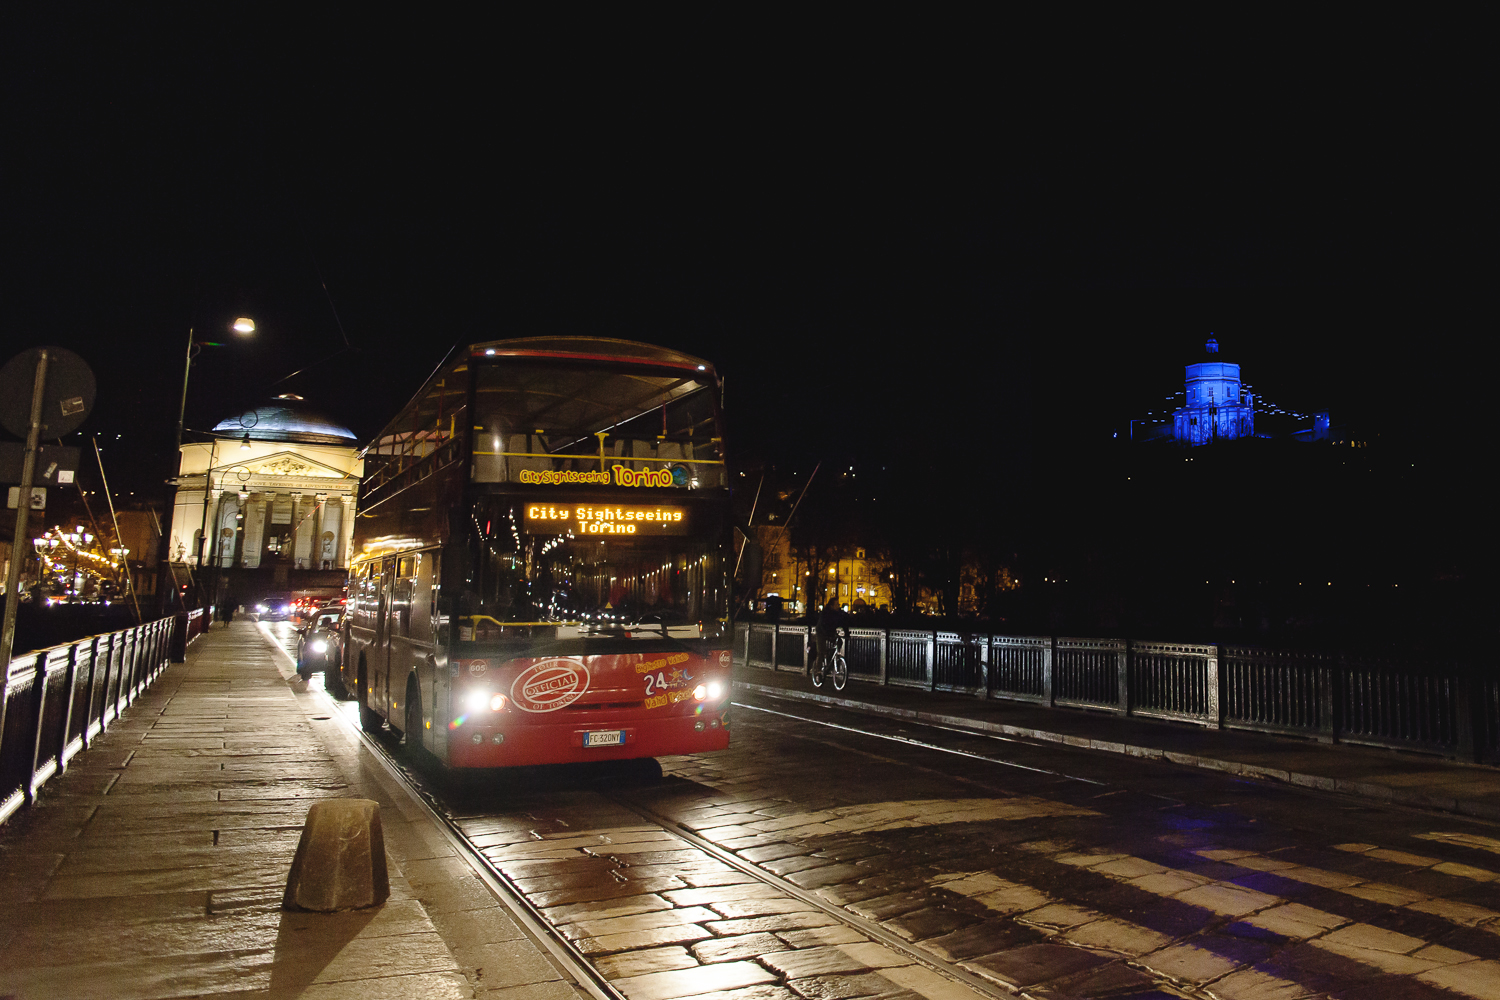 Lo special tour City Sightseeing per Luci d'artista a Torino